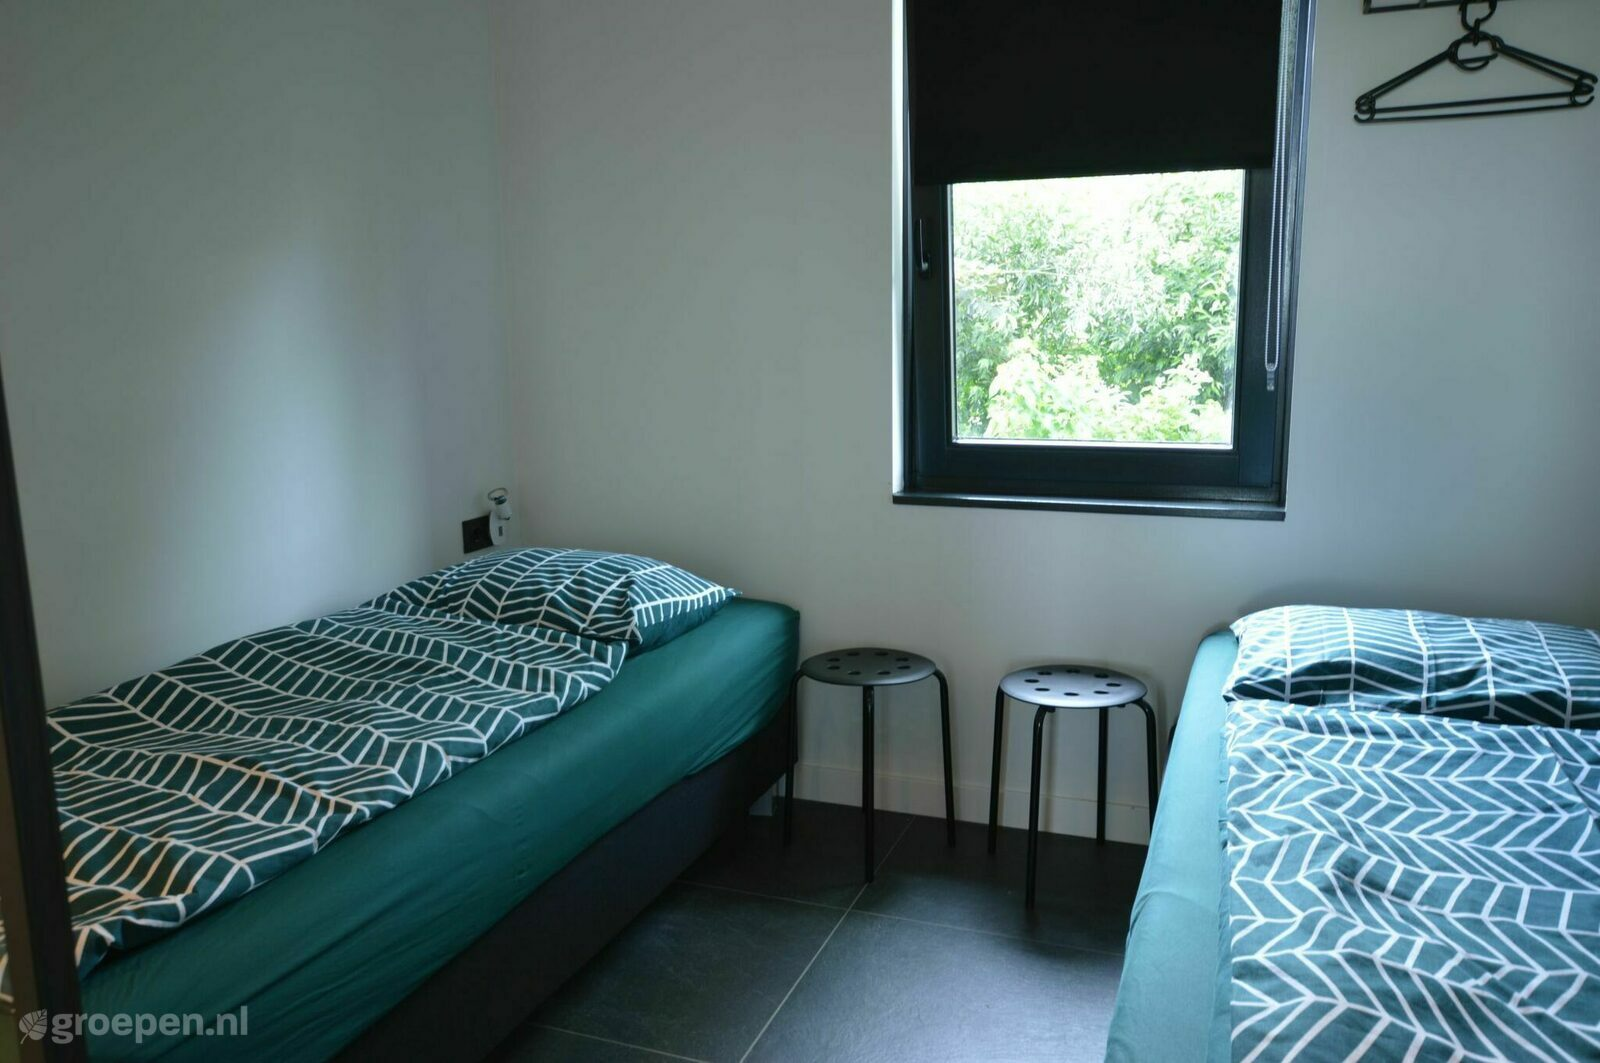 Group accommodation Hekendorp